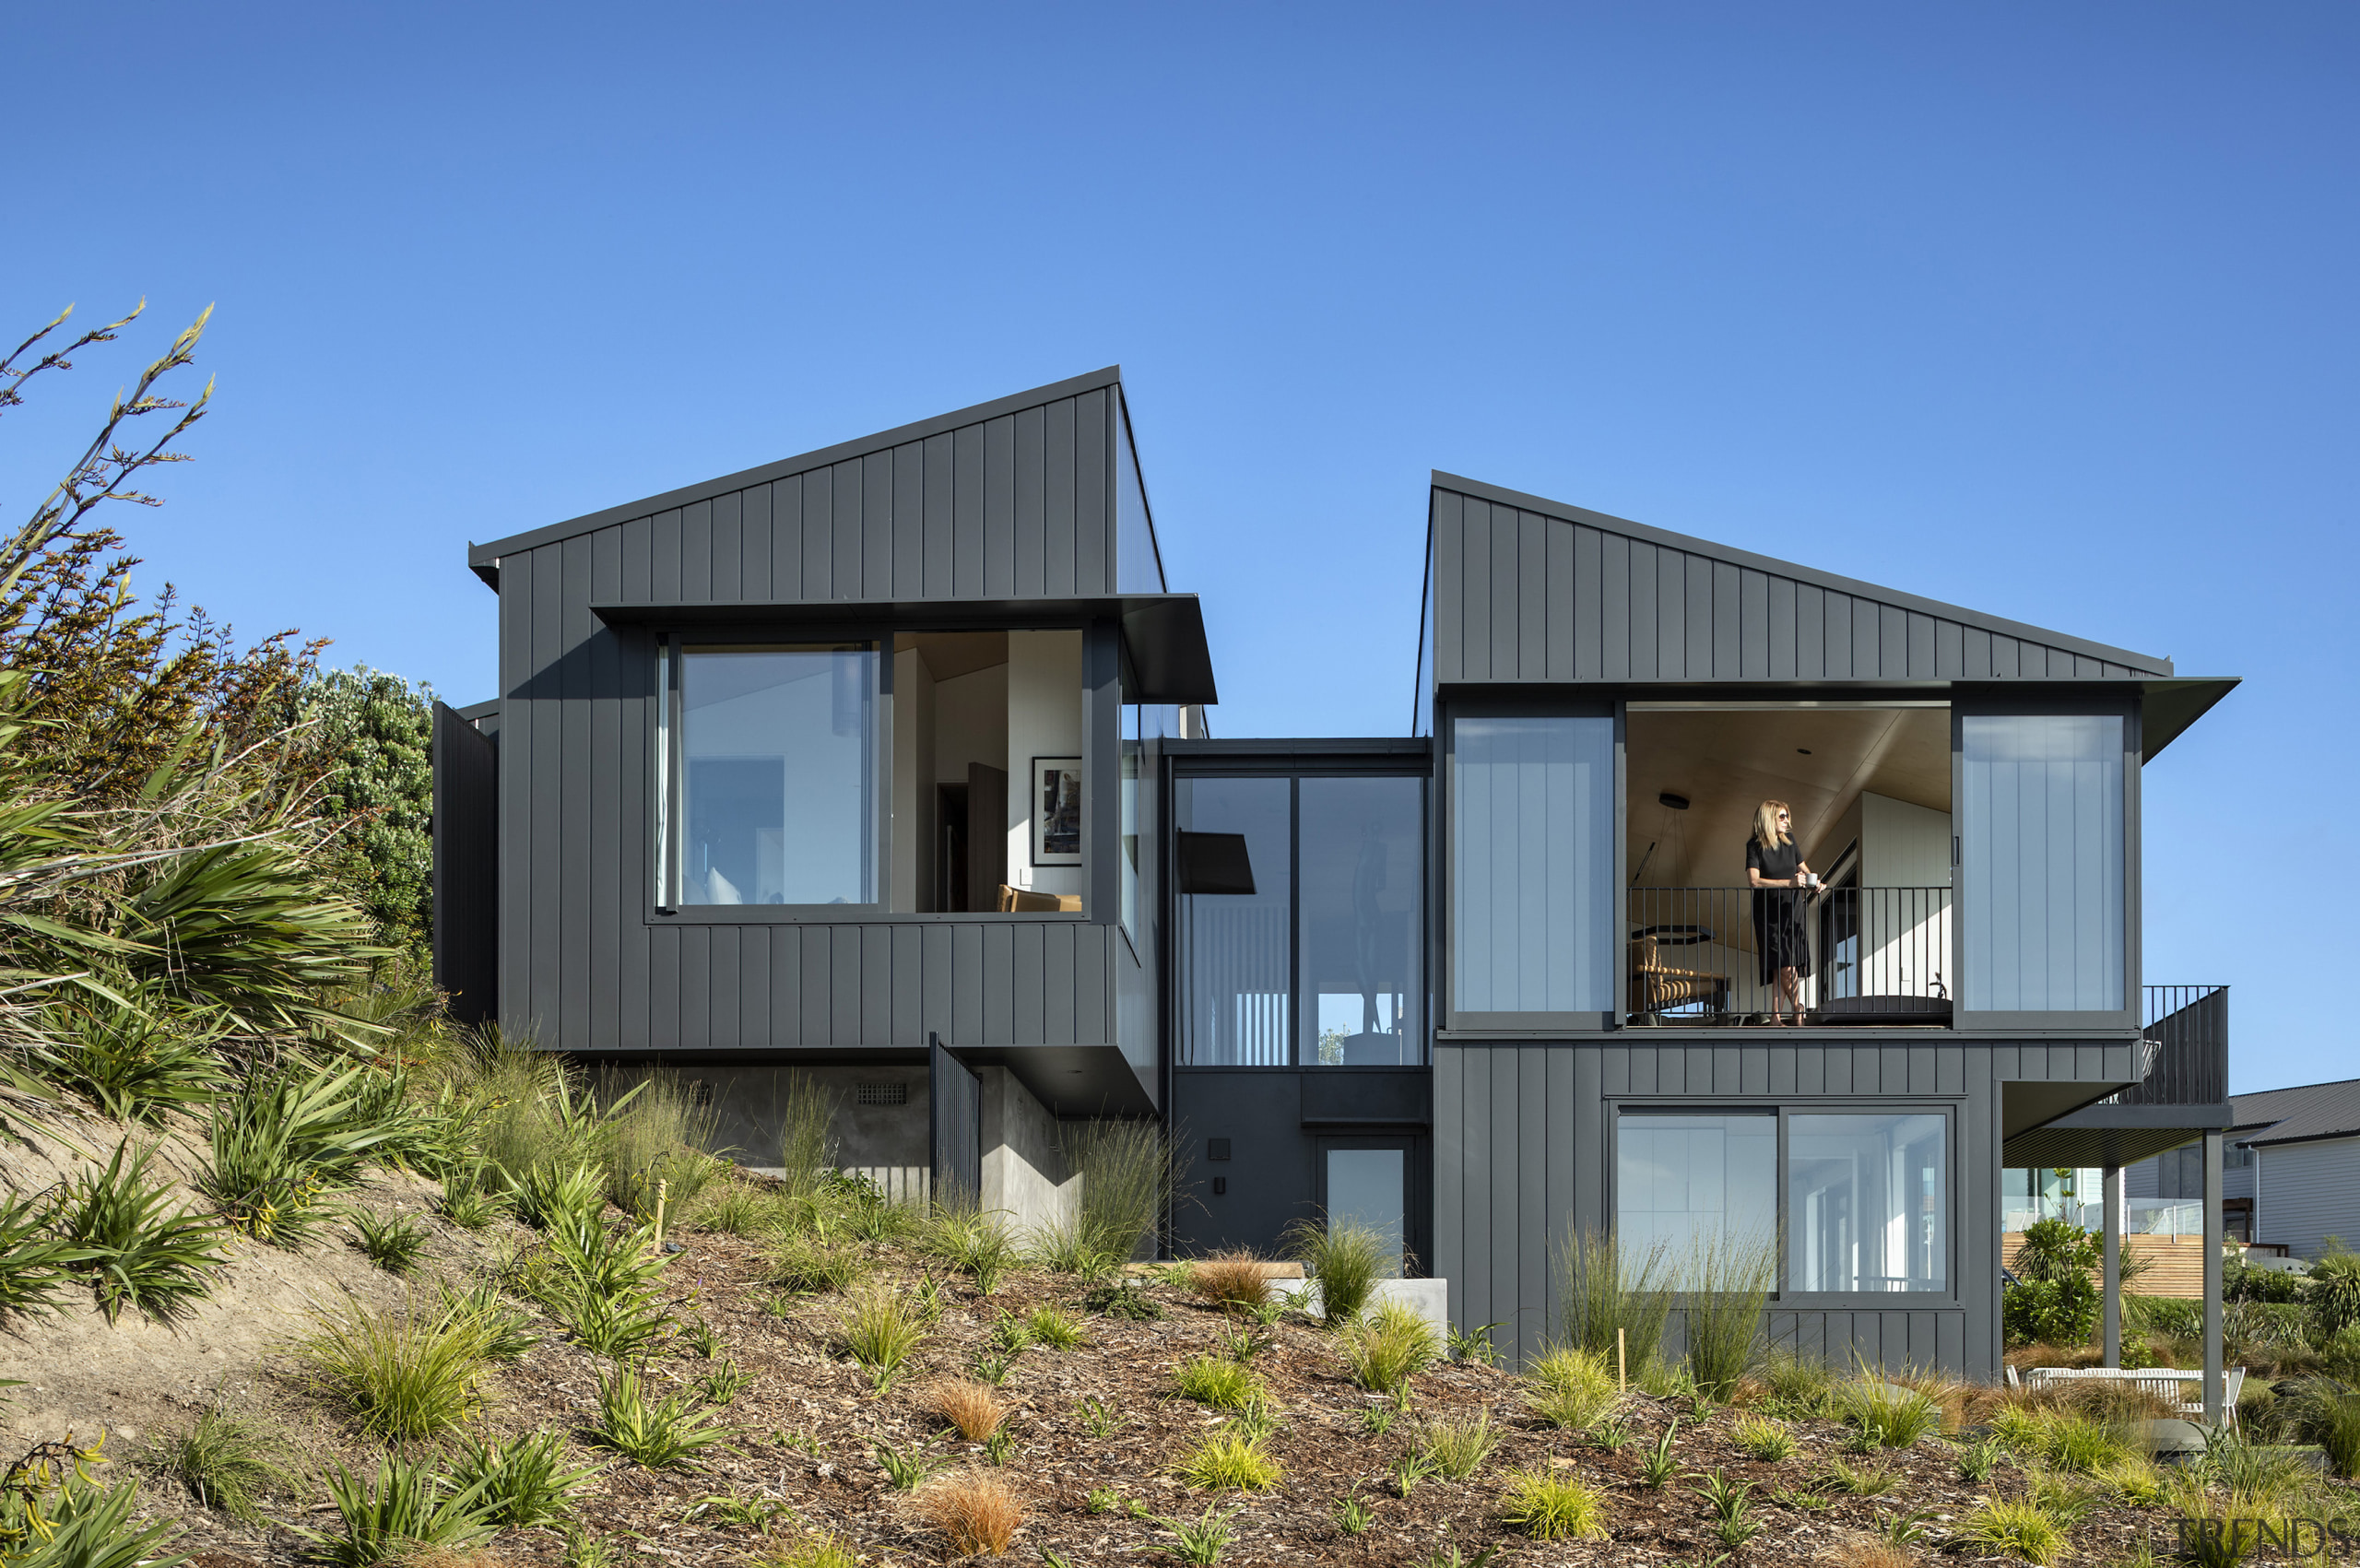 The ends of the coastal home's two wings